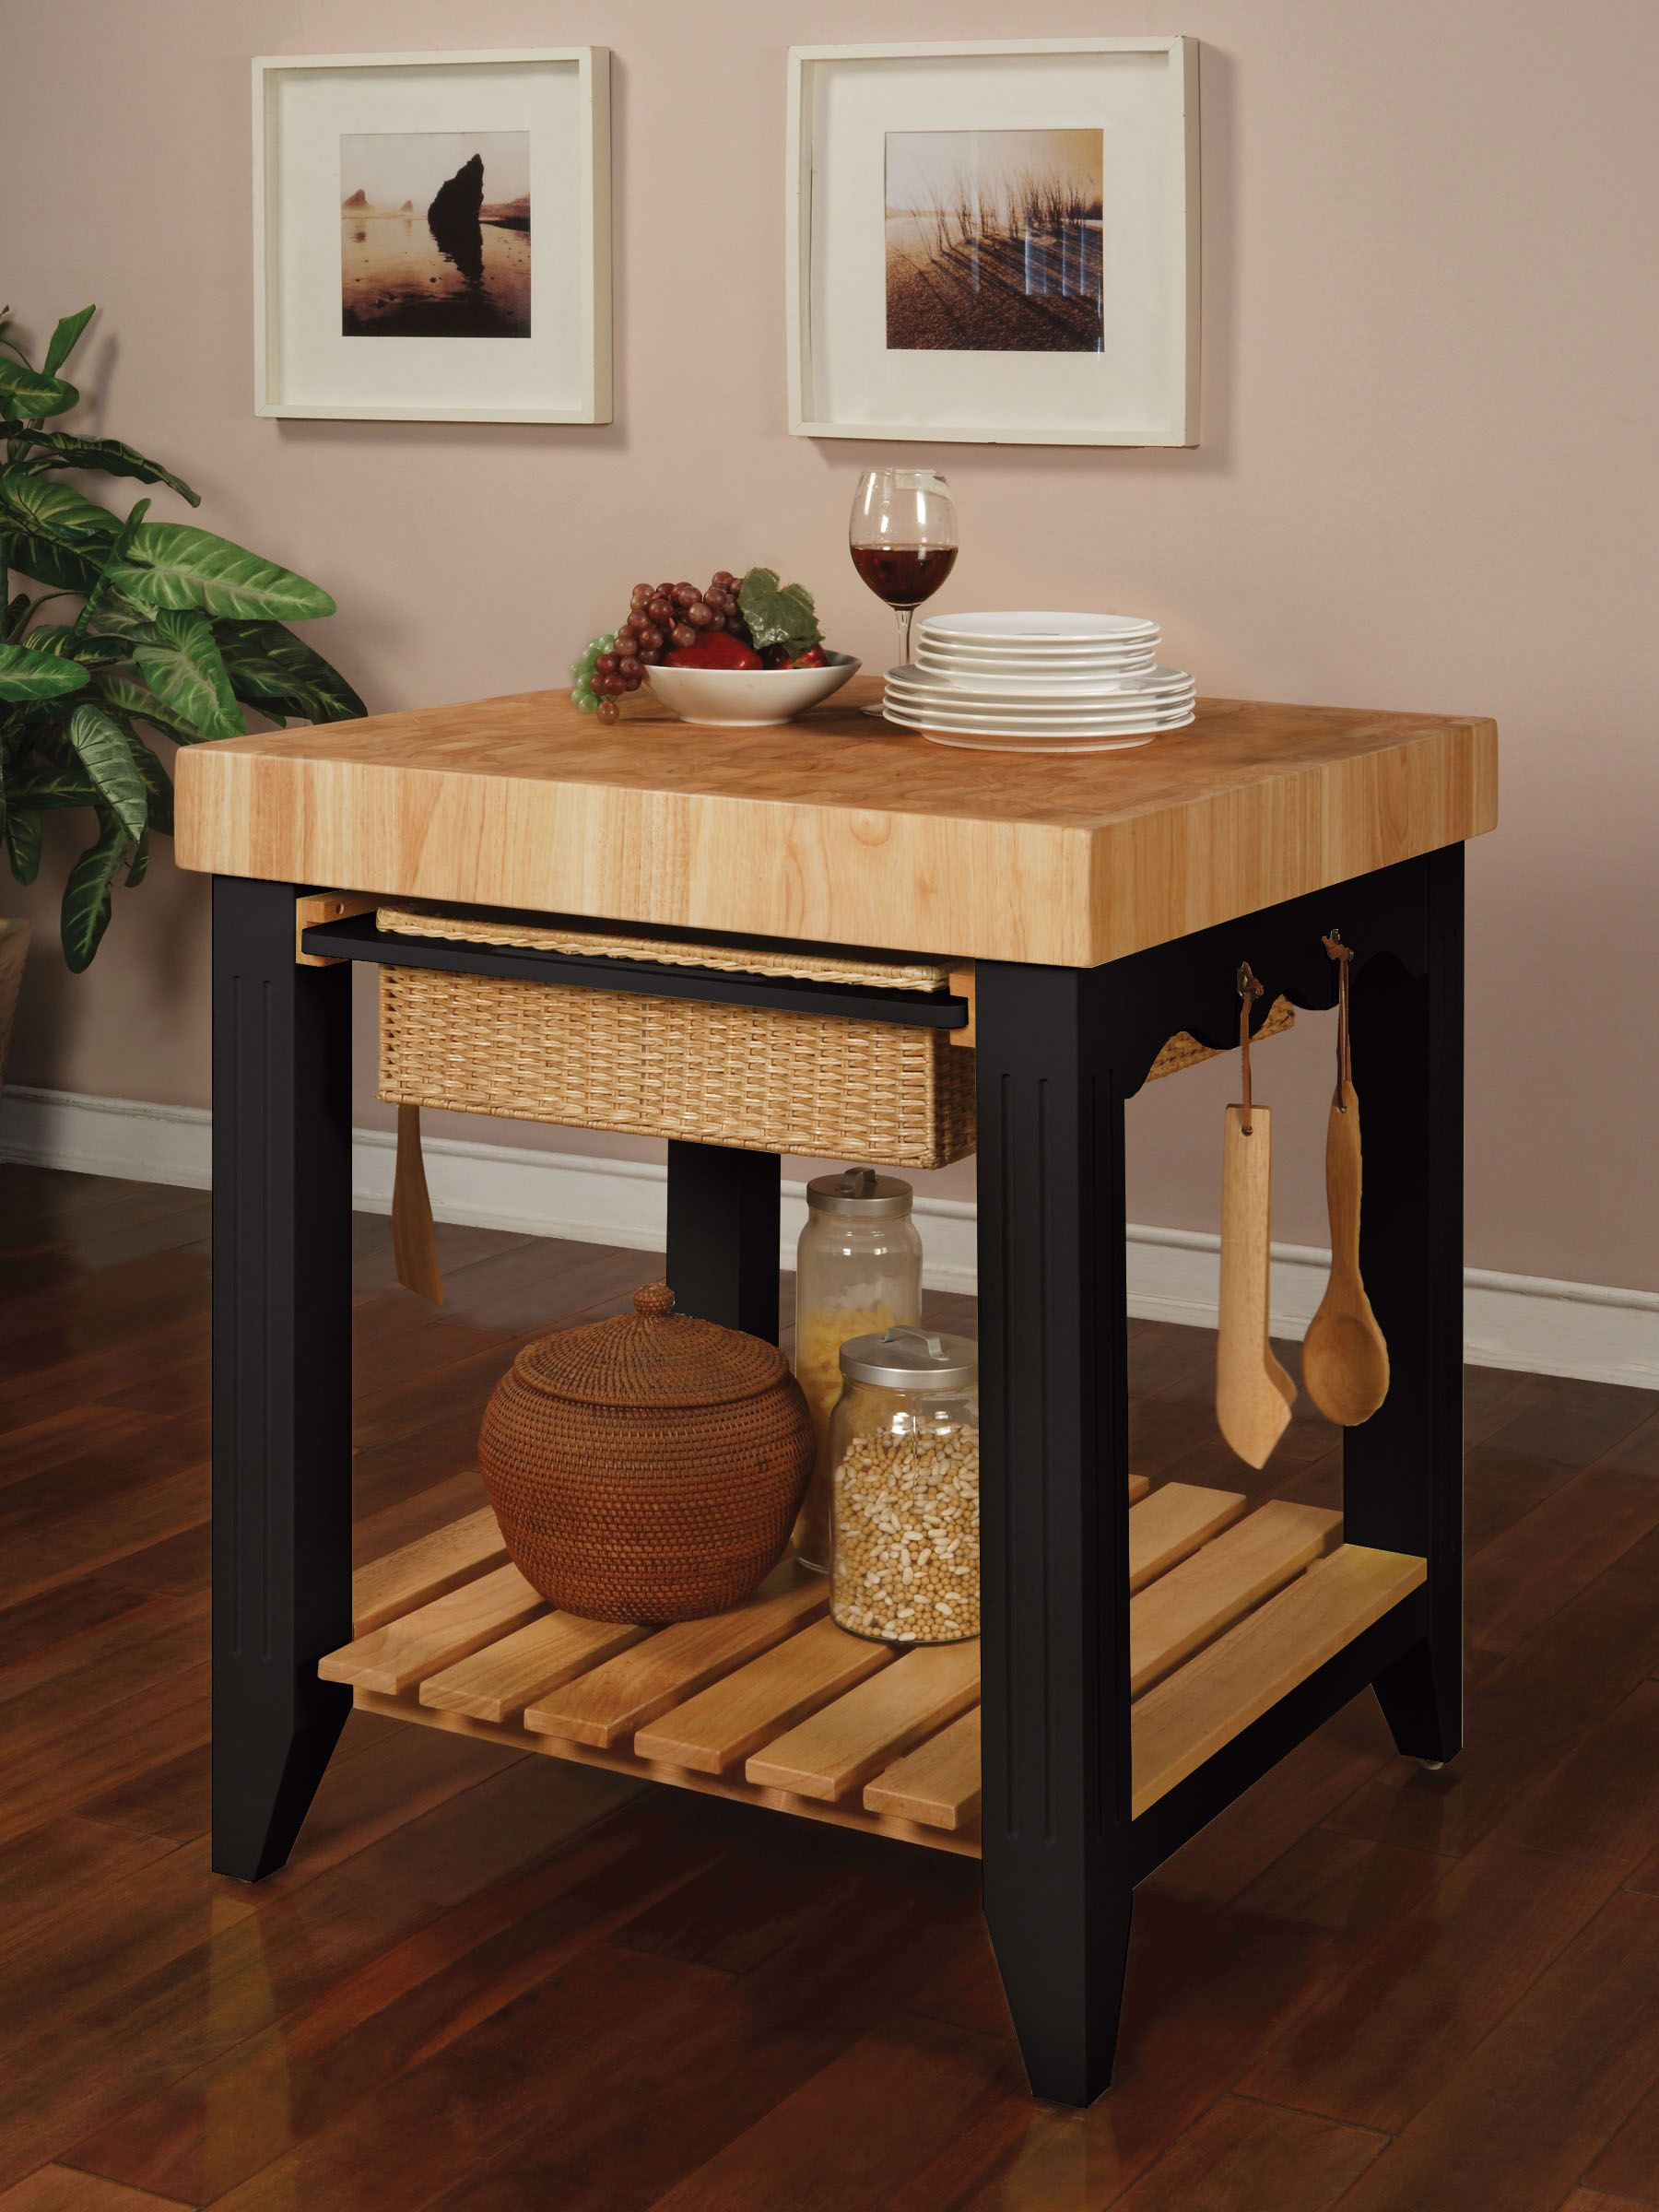 L Powell Color Story Black Butcher Block Kitchen Island Captivating Butcher Block Kitchen Island Design Ideas